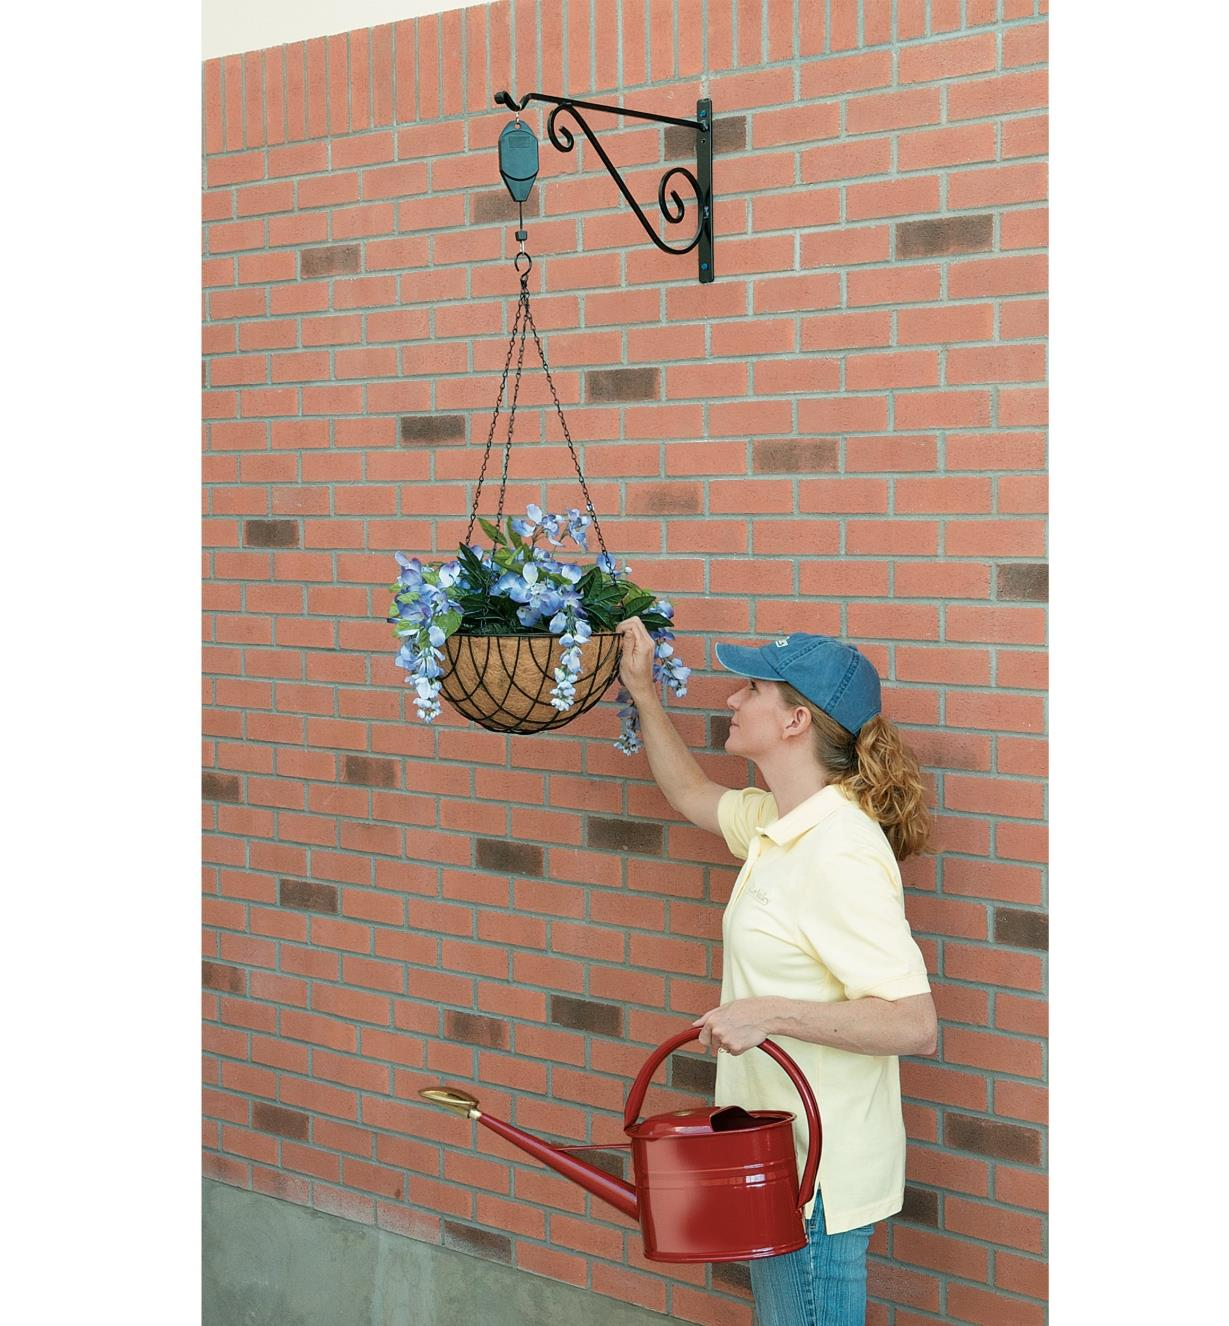 Planter basket raised on the Hanging Basket Pulley